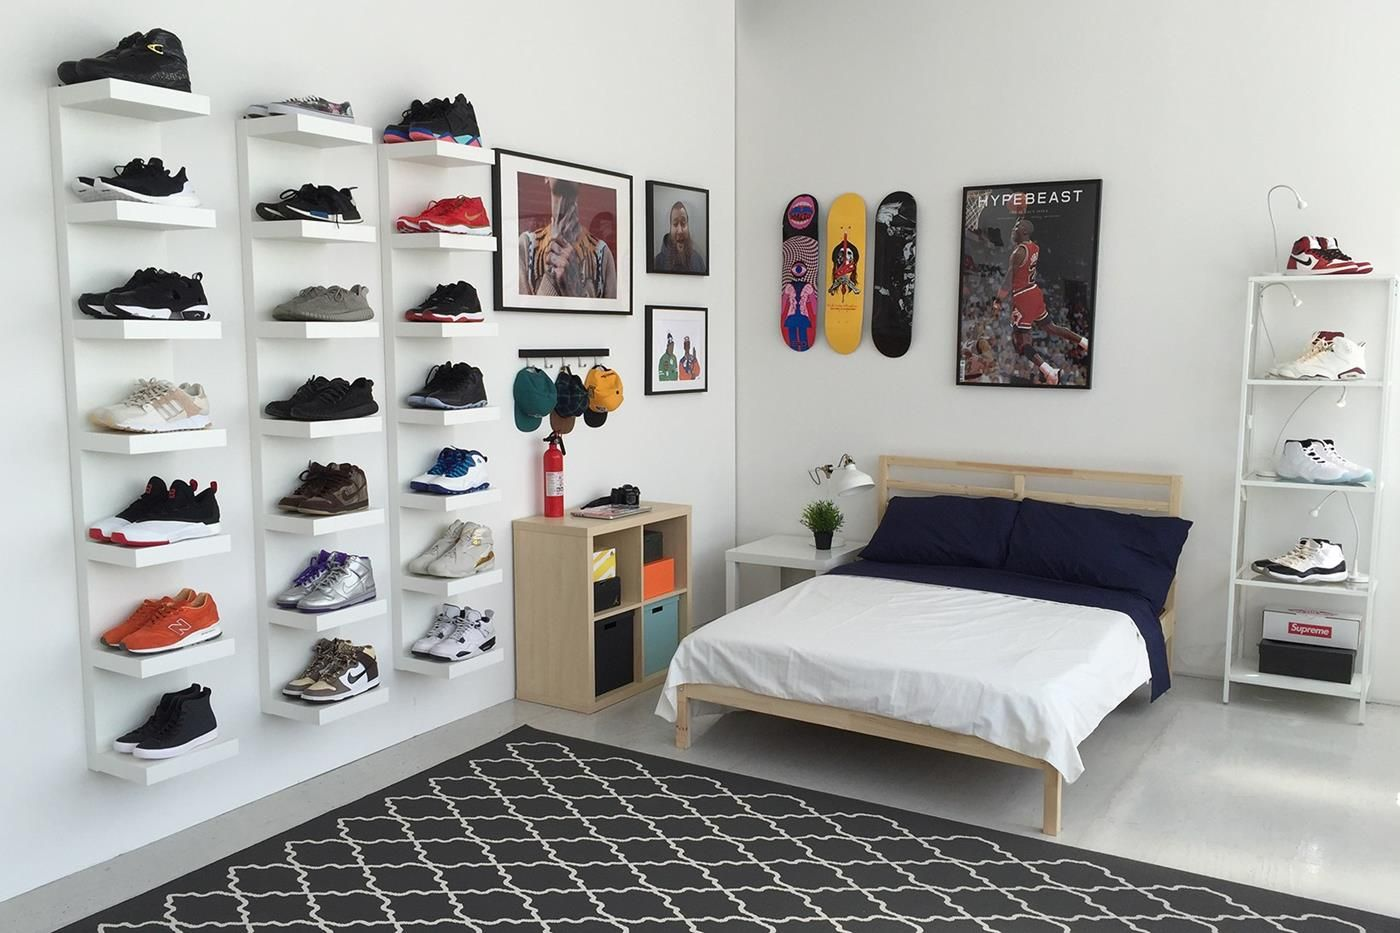 IKEAR And HYPEBEAST Design The Ideal Sneakerhead Bedroom18